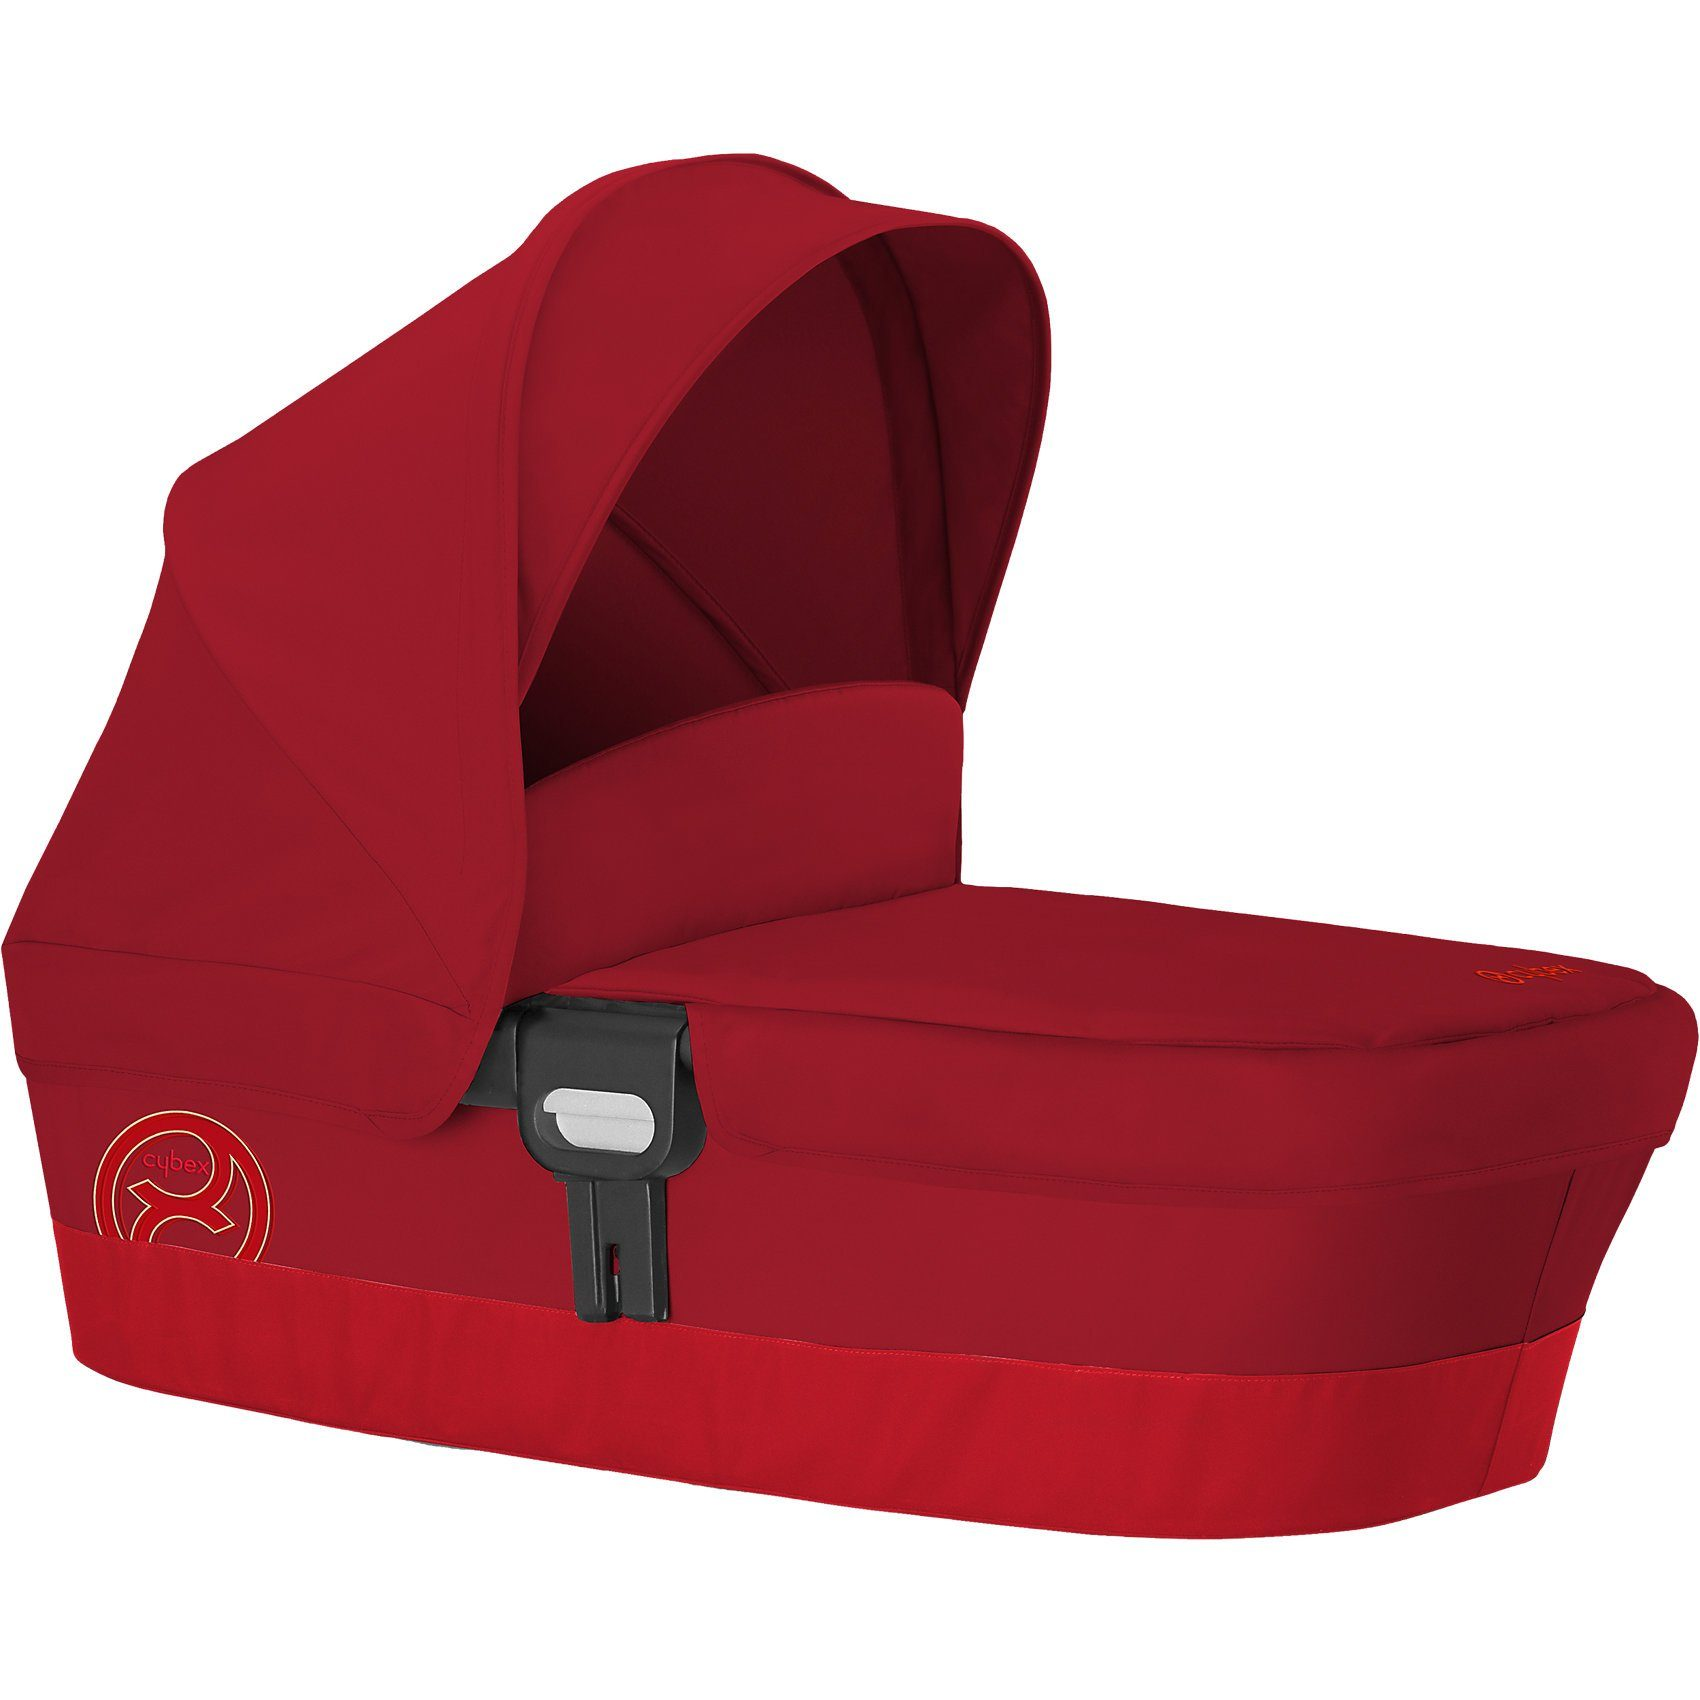 Cybex Kinderwagenaufsatz Carry Cot M, Gold-Line, Hot & Spicy, 2016